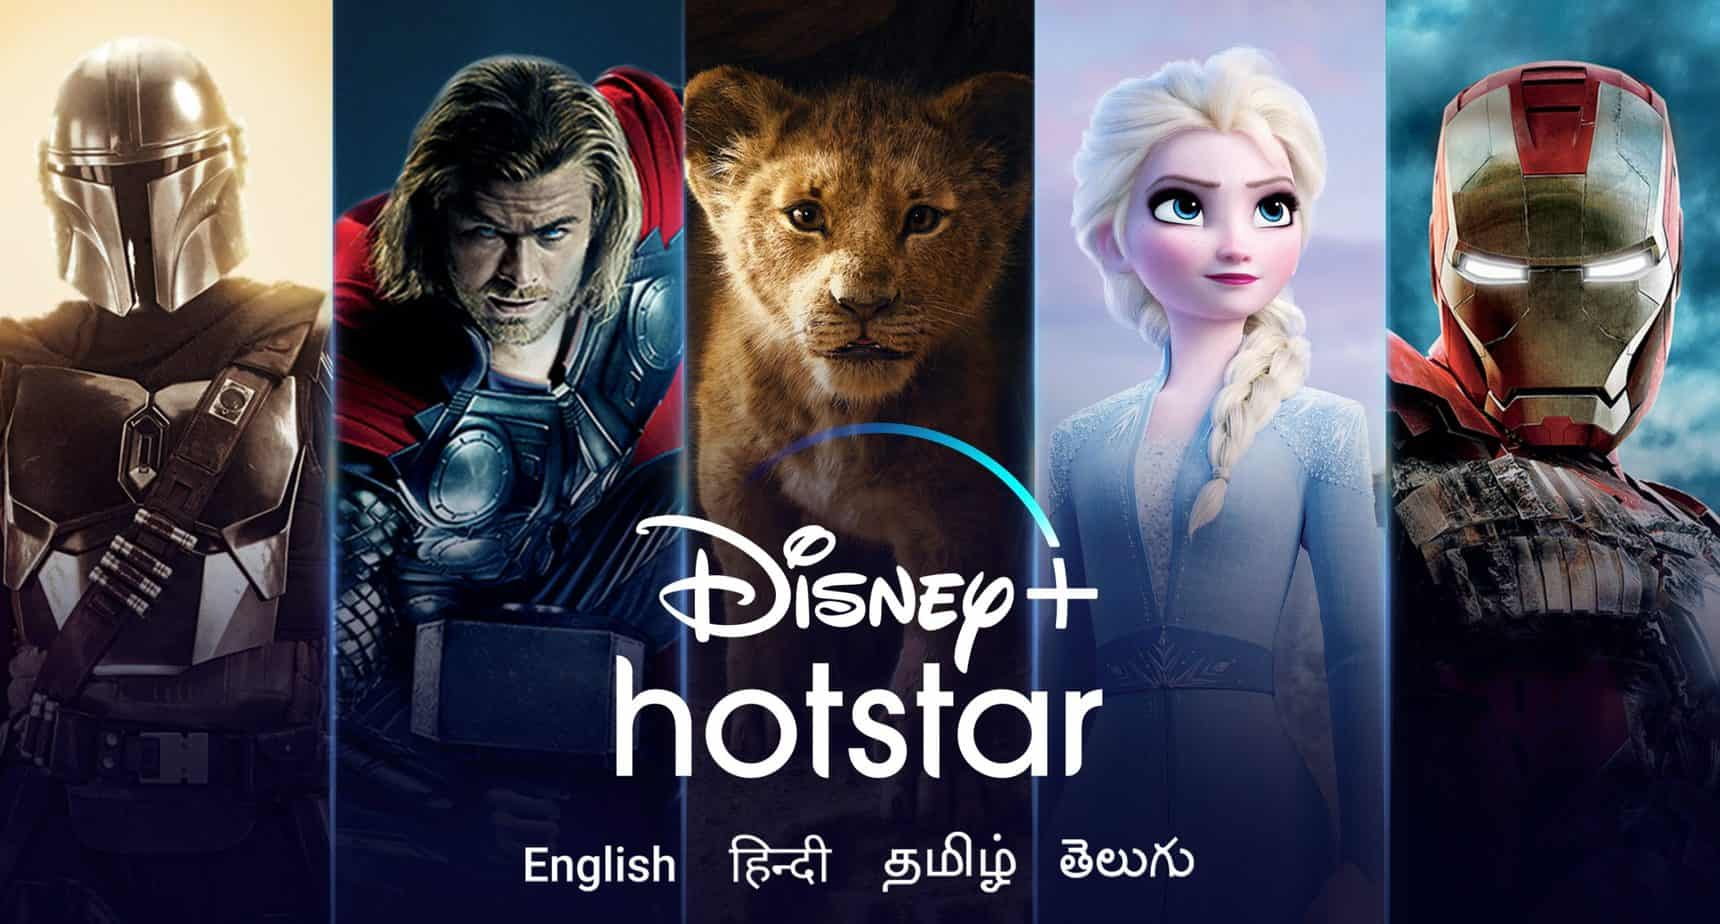 Disney plus Hotstar now has a mobile-only viewing plan